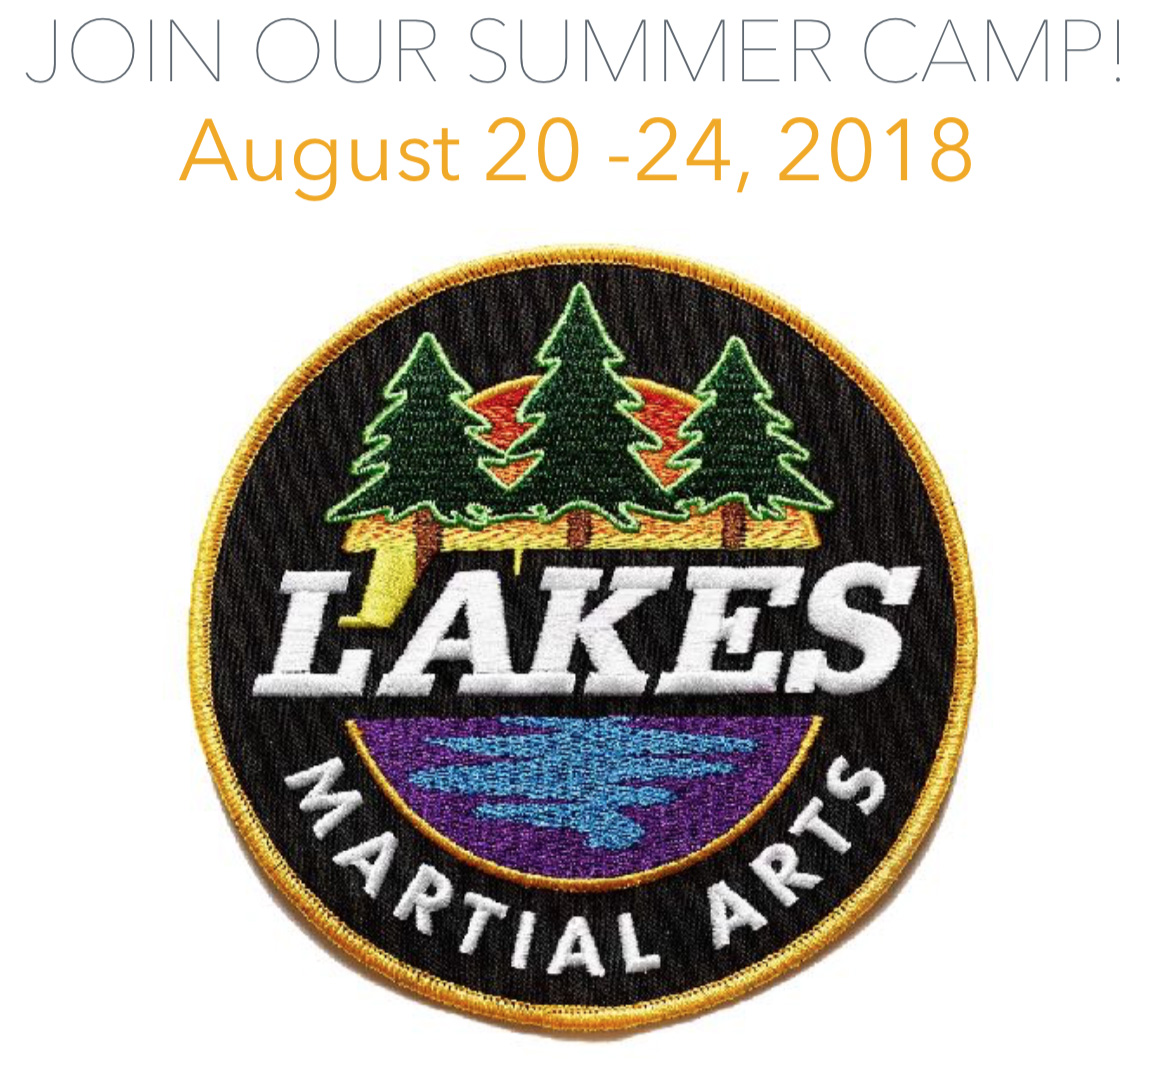 summer-camp-lakes-martial-arts-2018.jpg